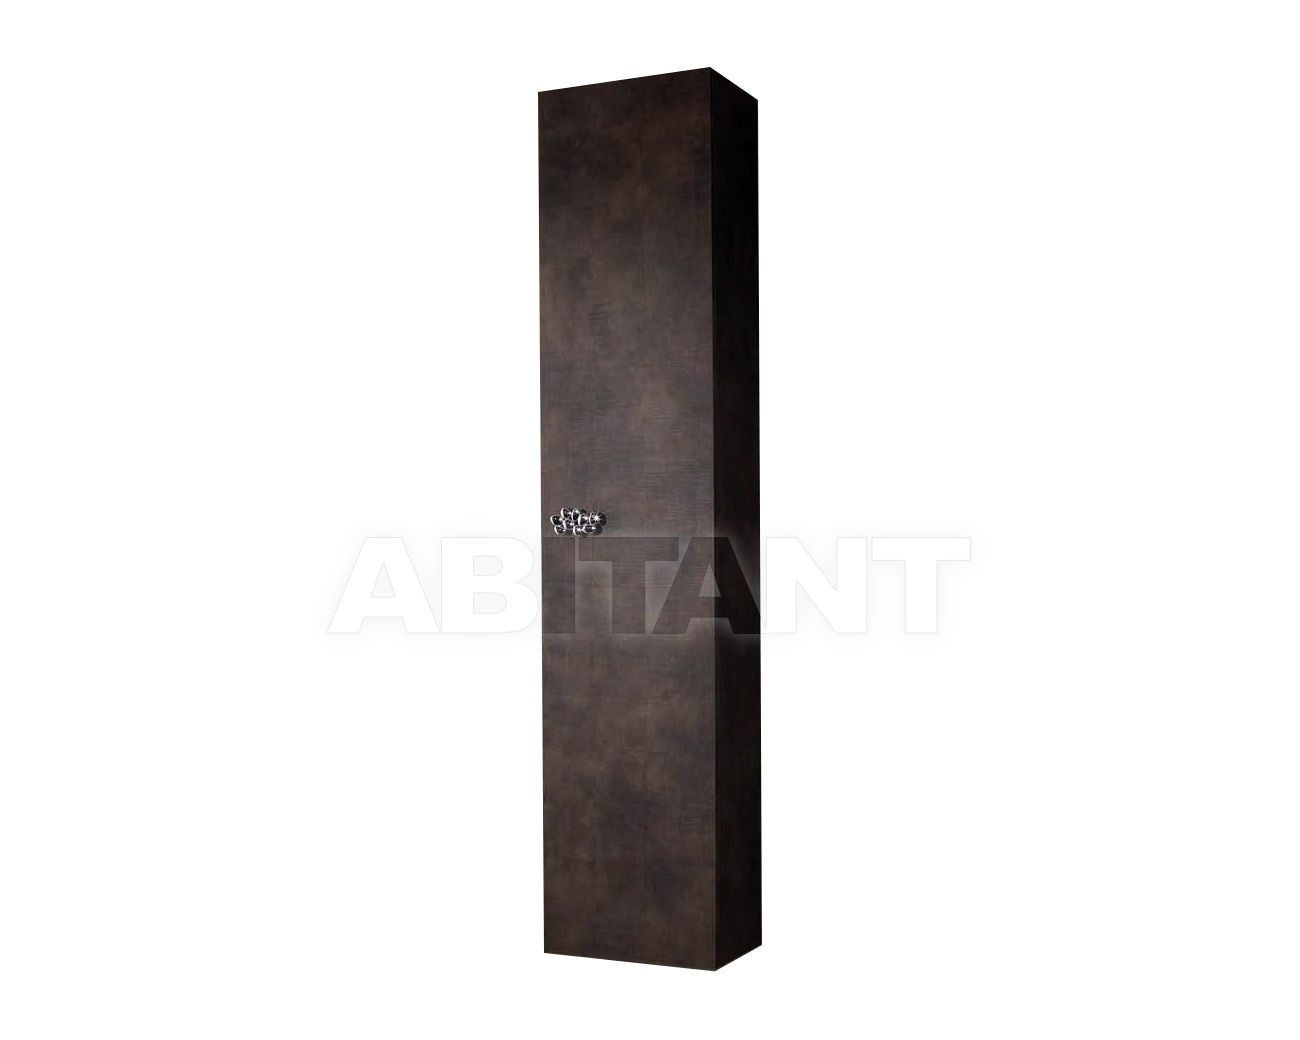 Купить Шкаф для ванной комнаты Ciciriello Lampadari s.r.l. Bathrooms Collection Colonna Melissa foglia bronzo